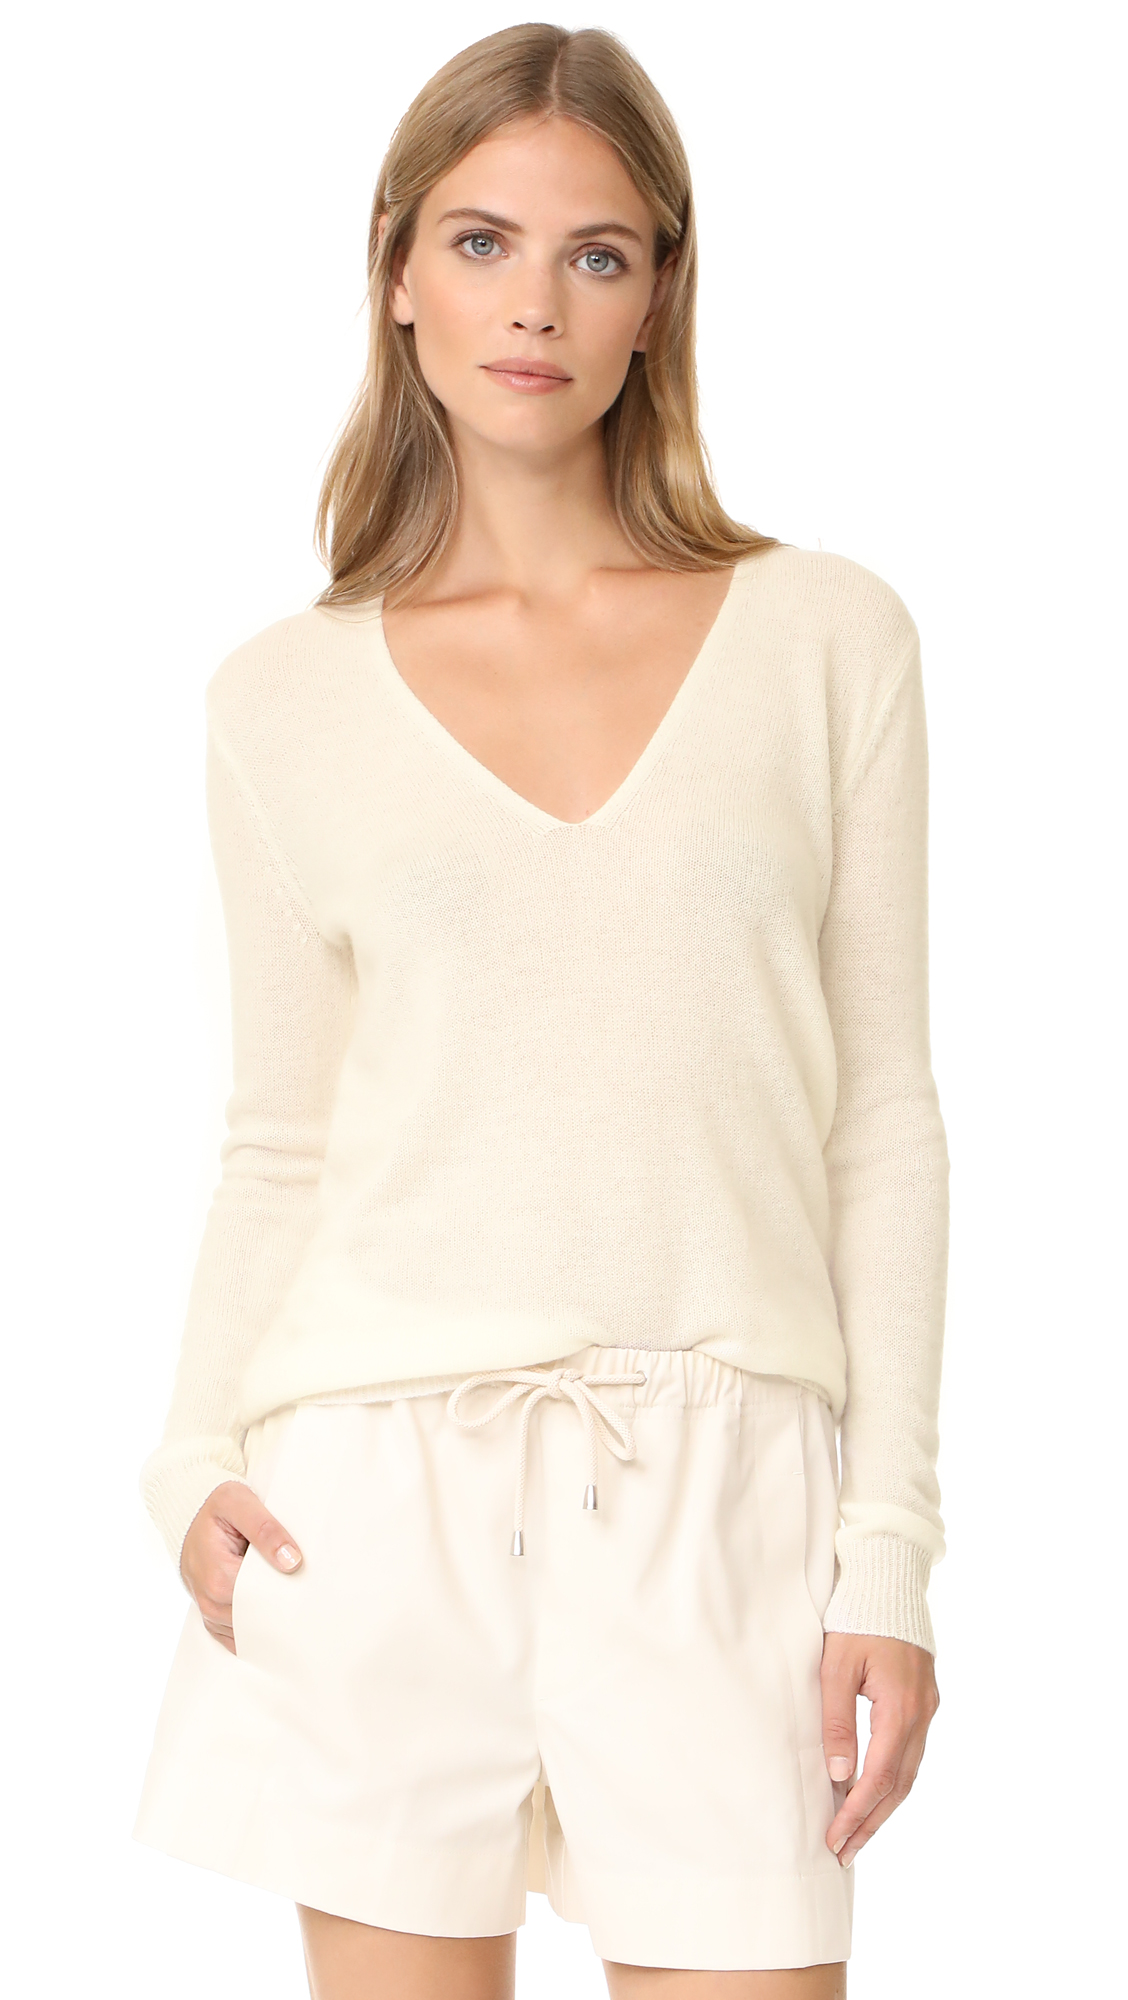 Theory Adrianna Cashmere Sweater - Ivory